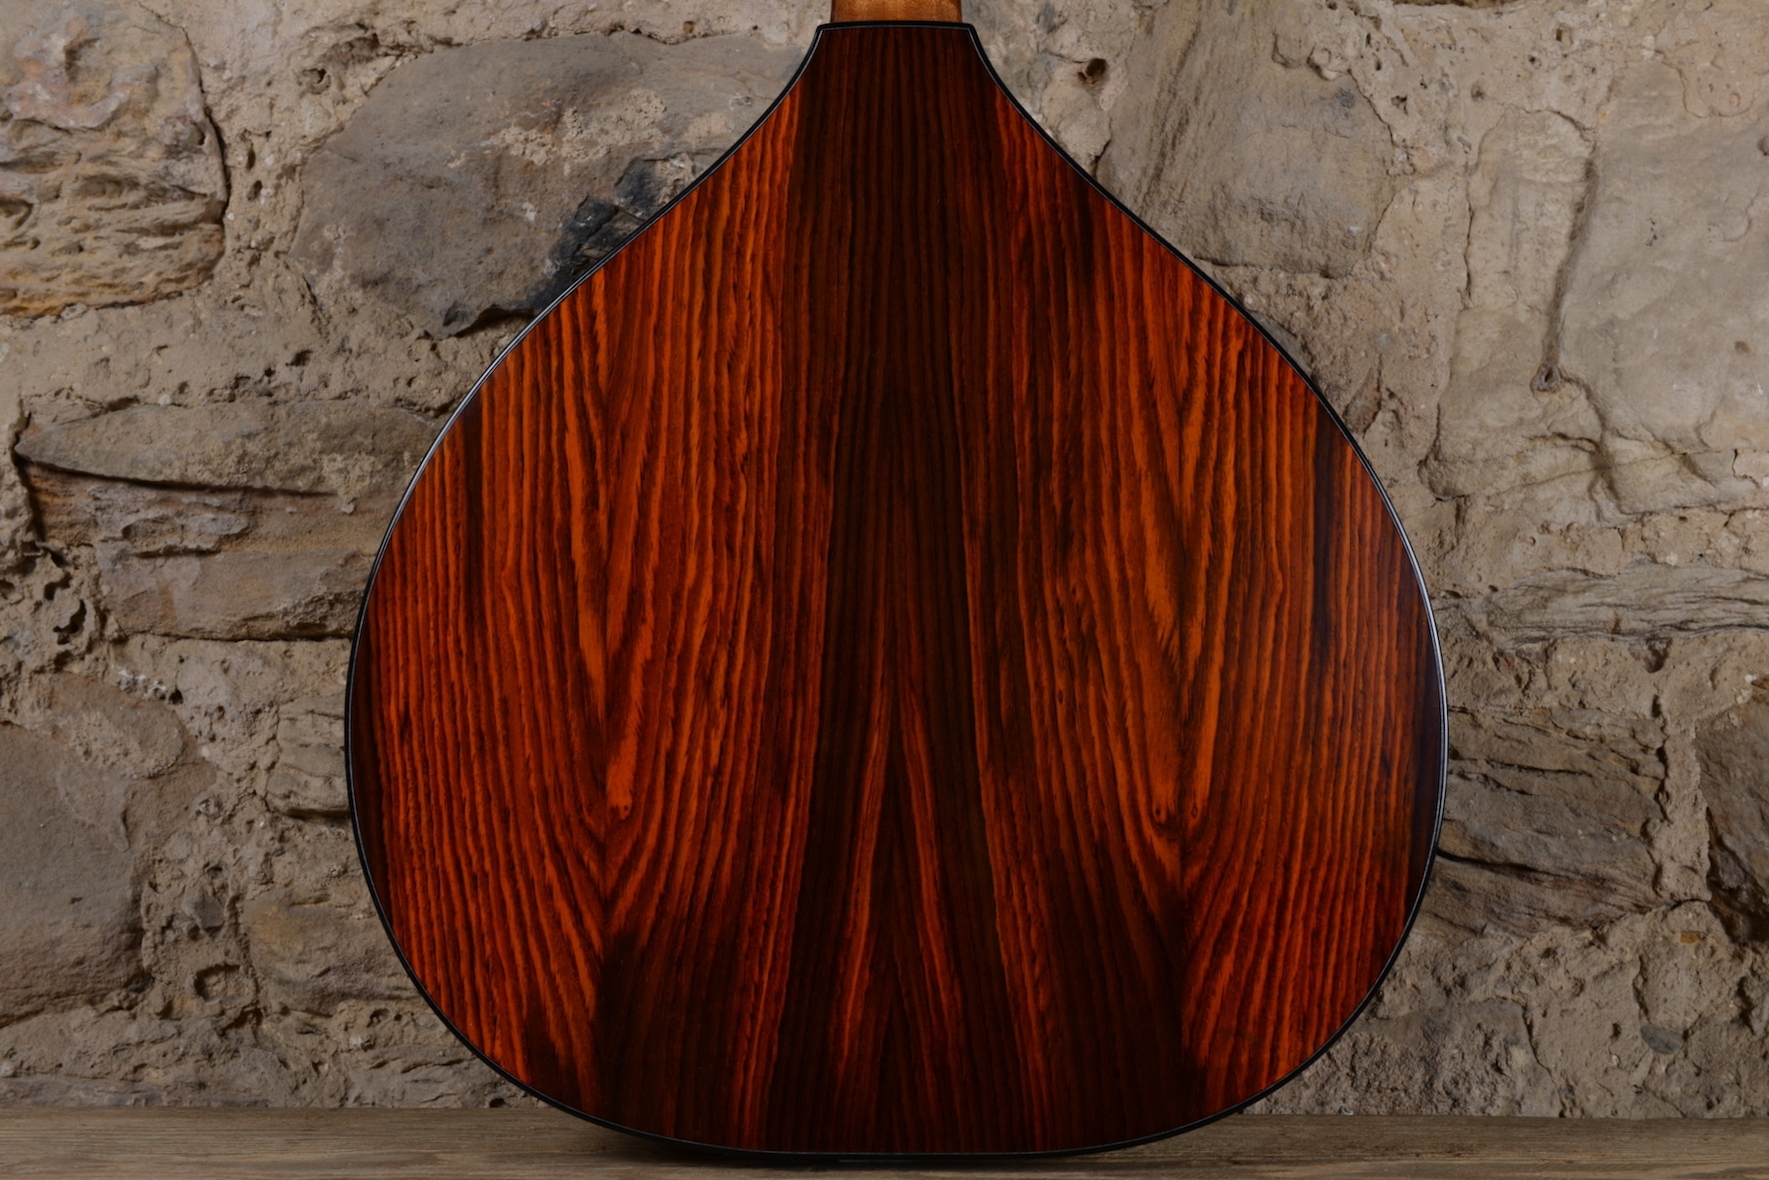 Exquisite Cocobolo back and sides